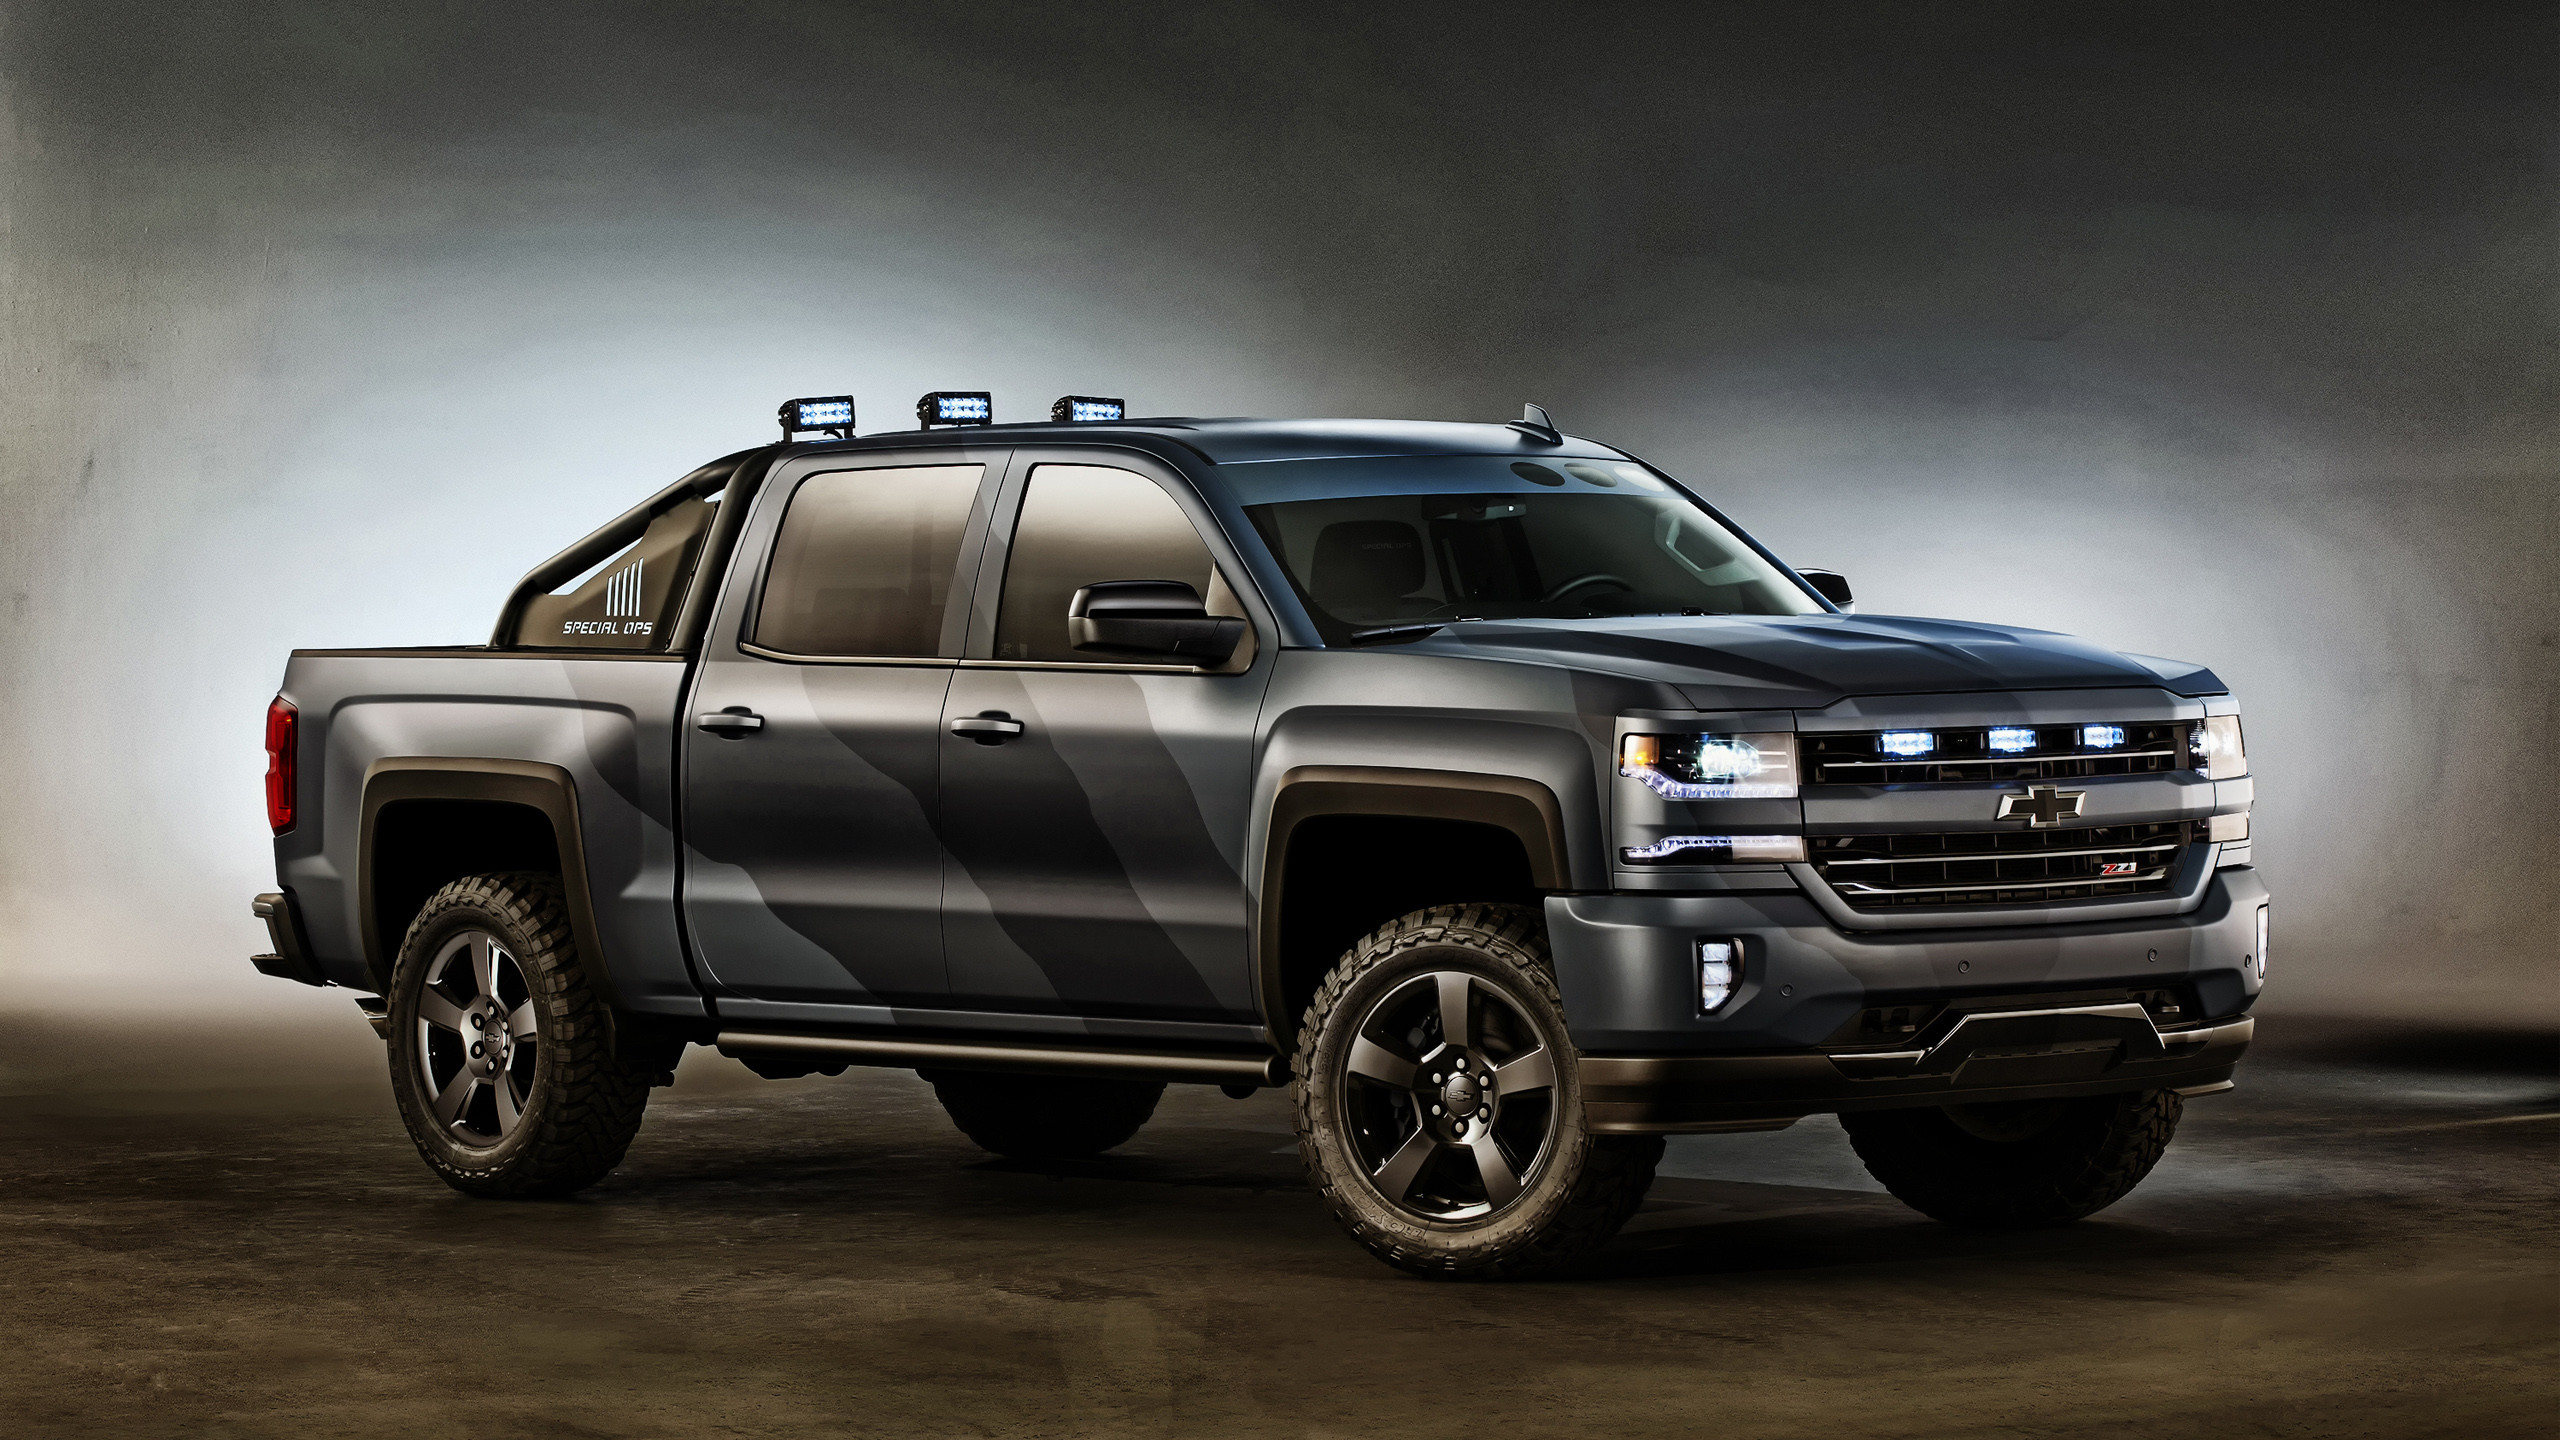 2560x1440 Chevy Silverado Wallpaper HD Creative Chevy Silverado Photos